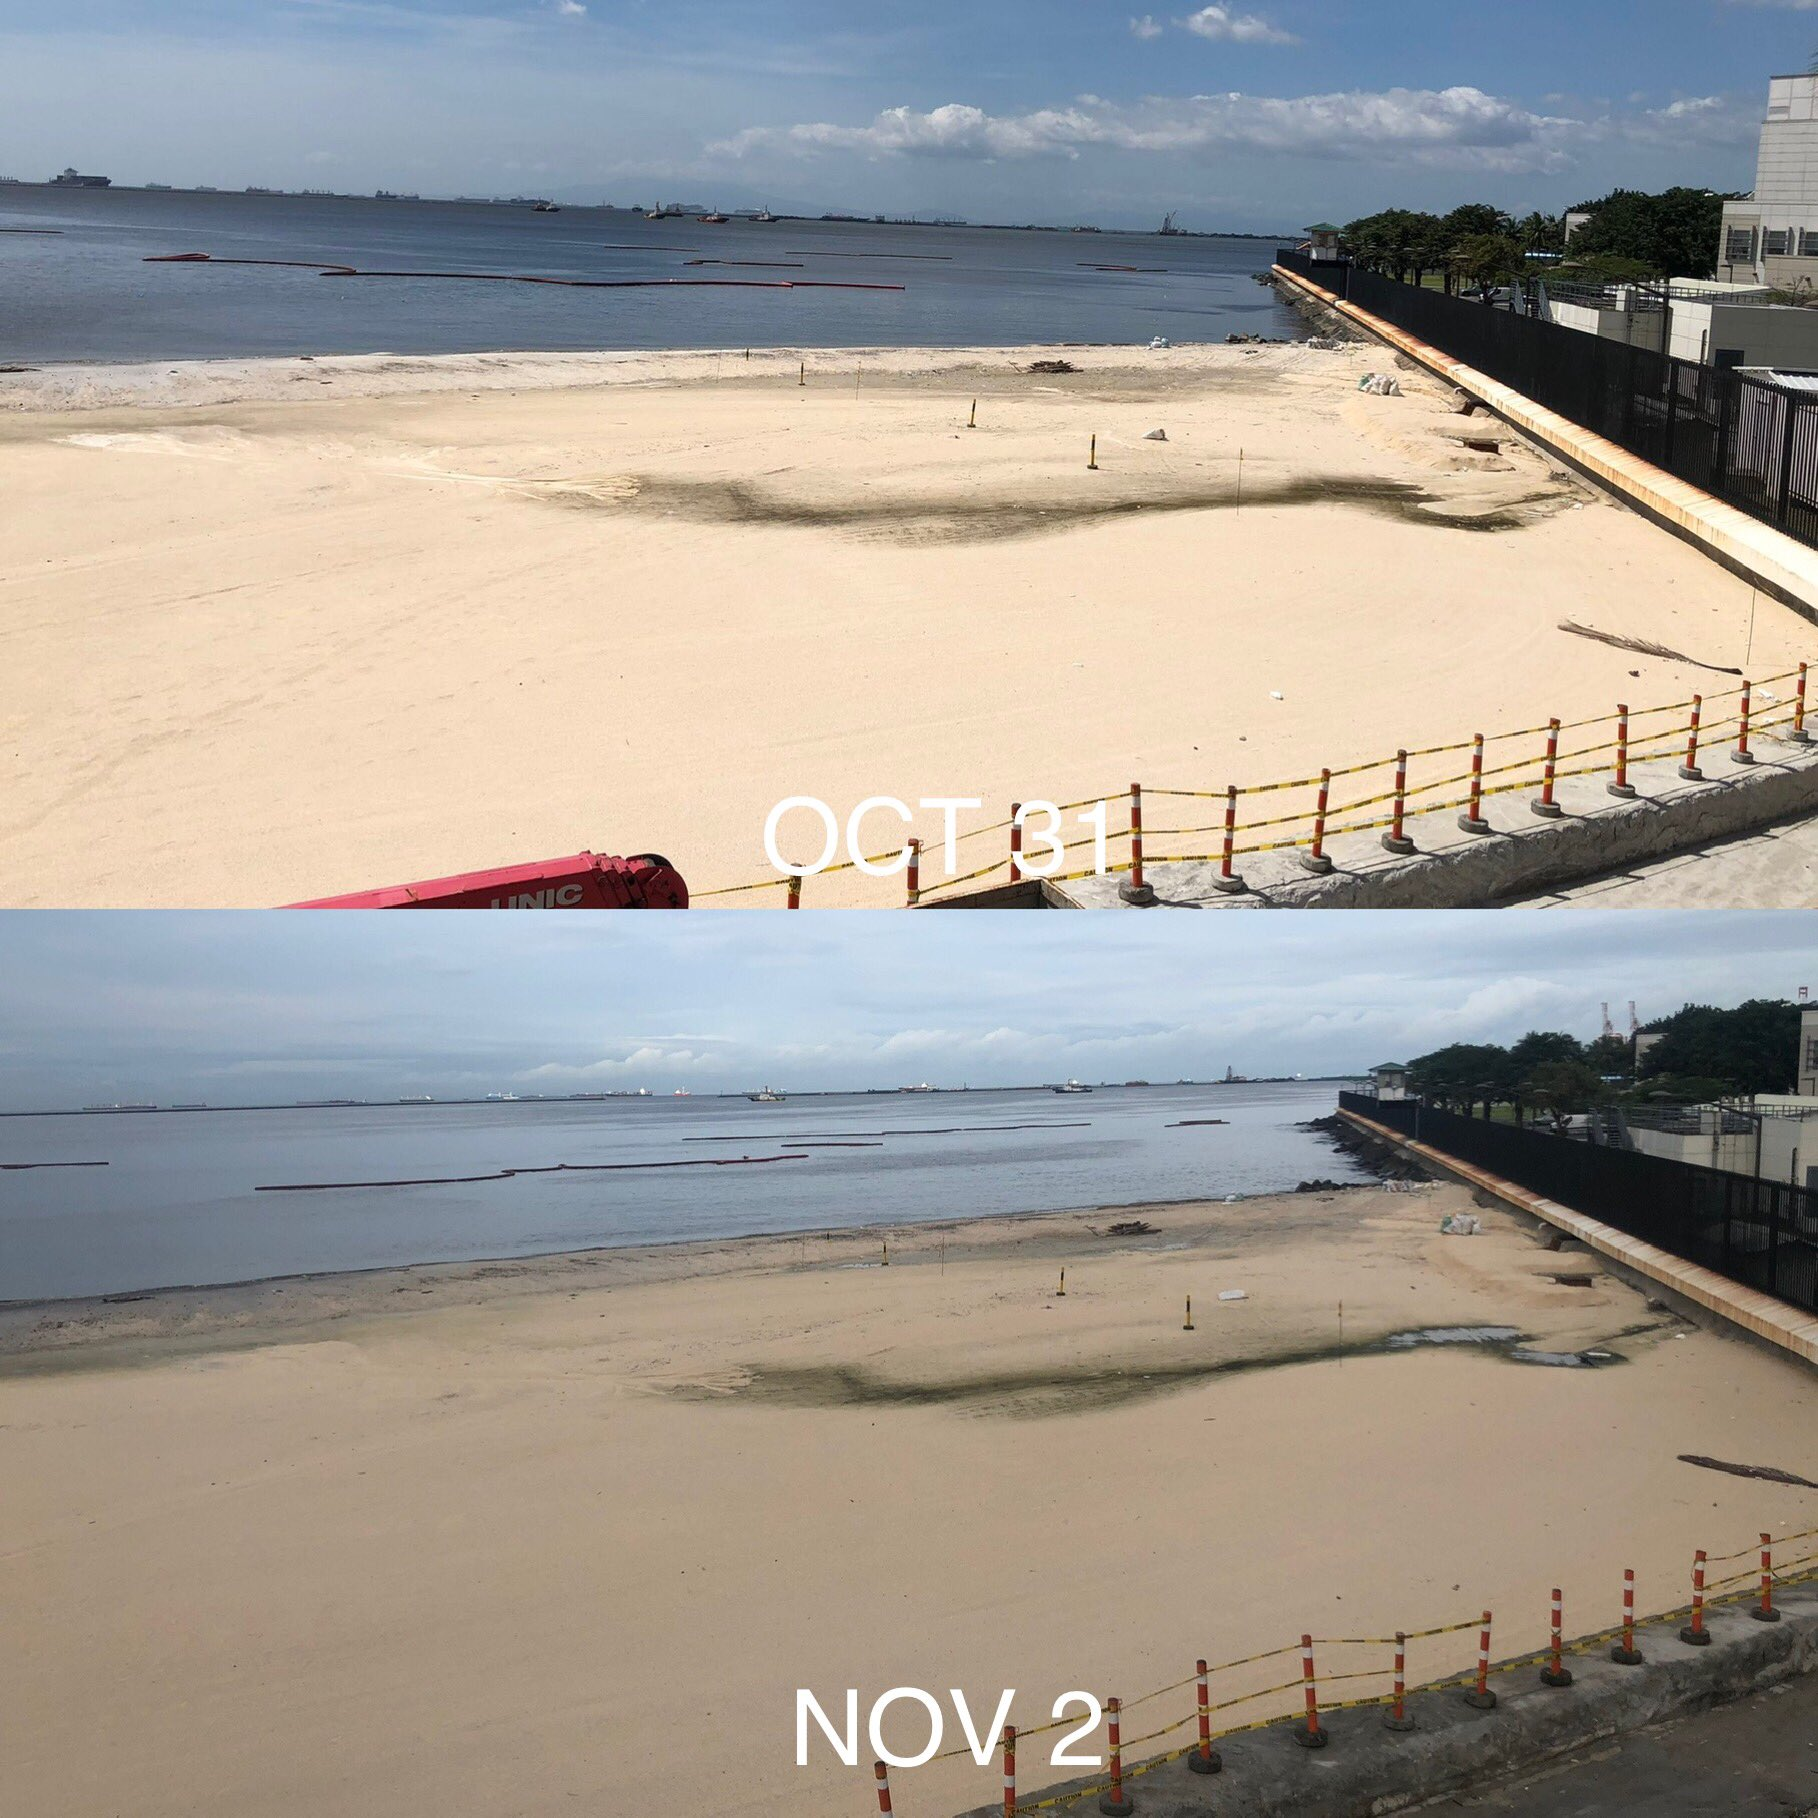 Dolomite After Typhoon Rolly – What Happened To The Artificial Sand?